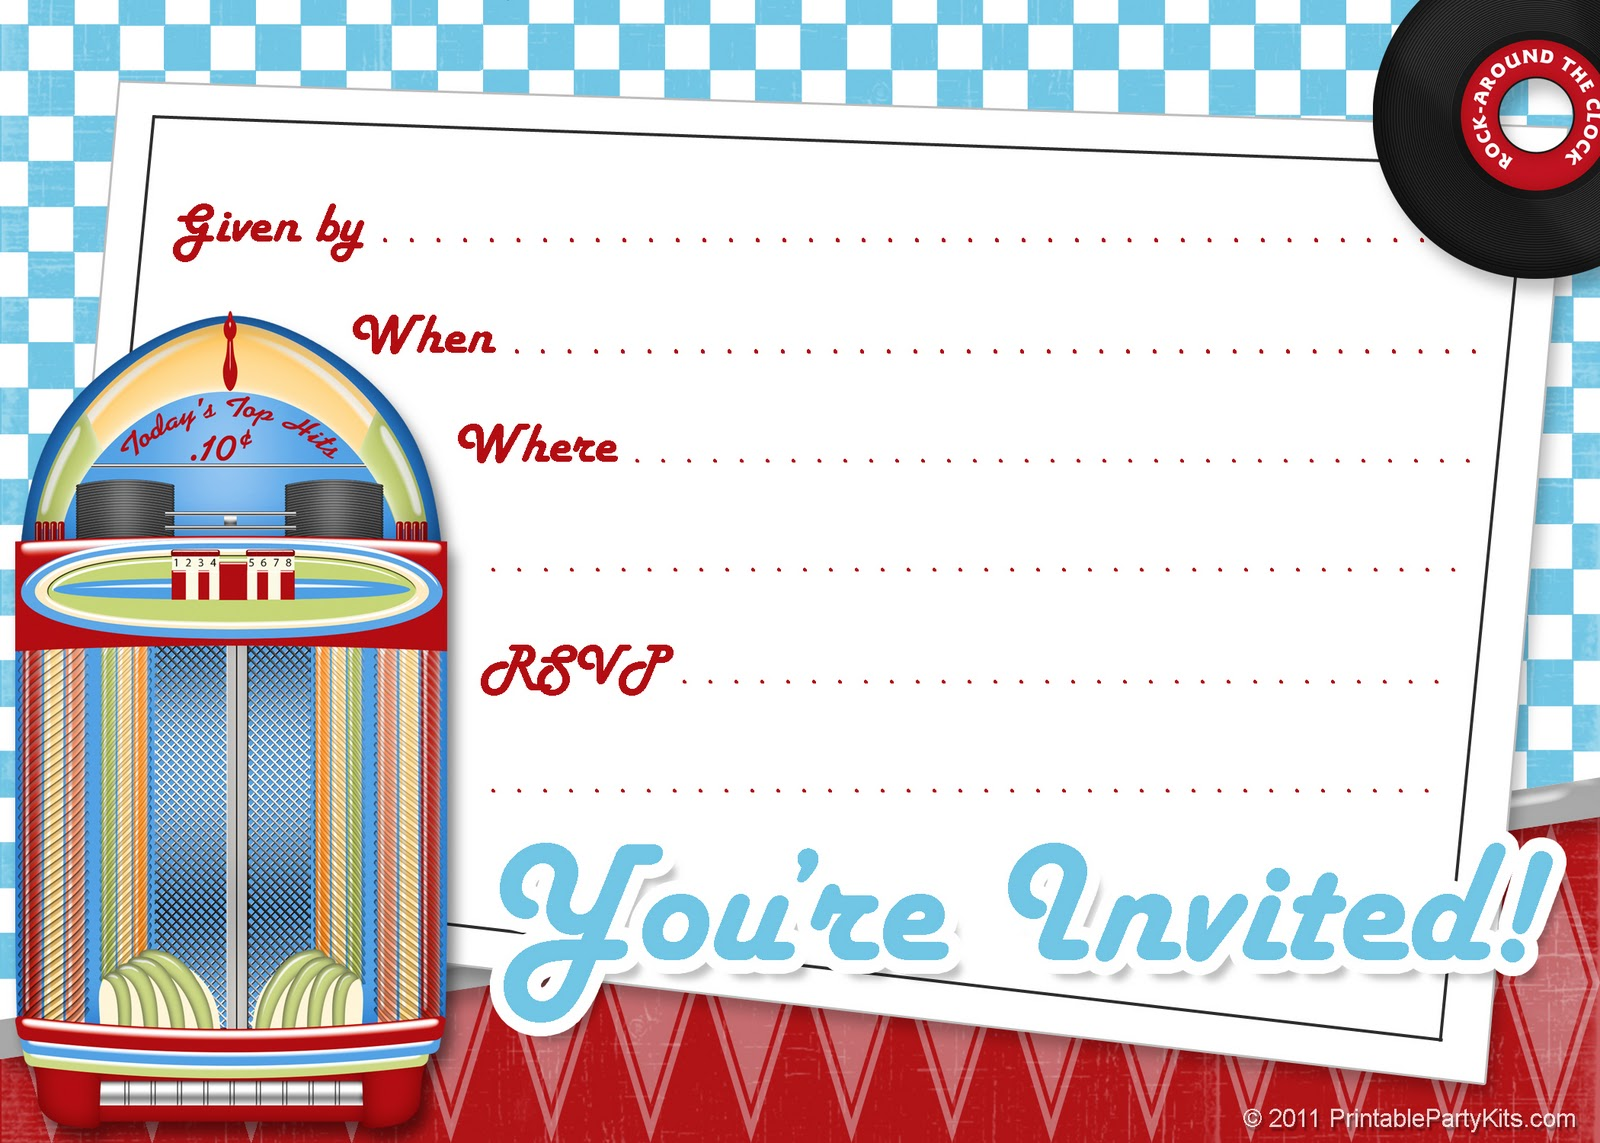 Free Printable Party Invitations: Free Invite Art for a 1950s or ...